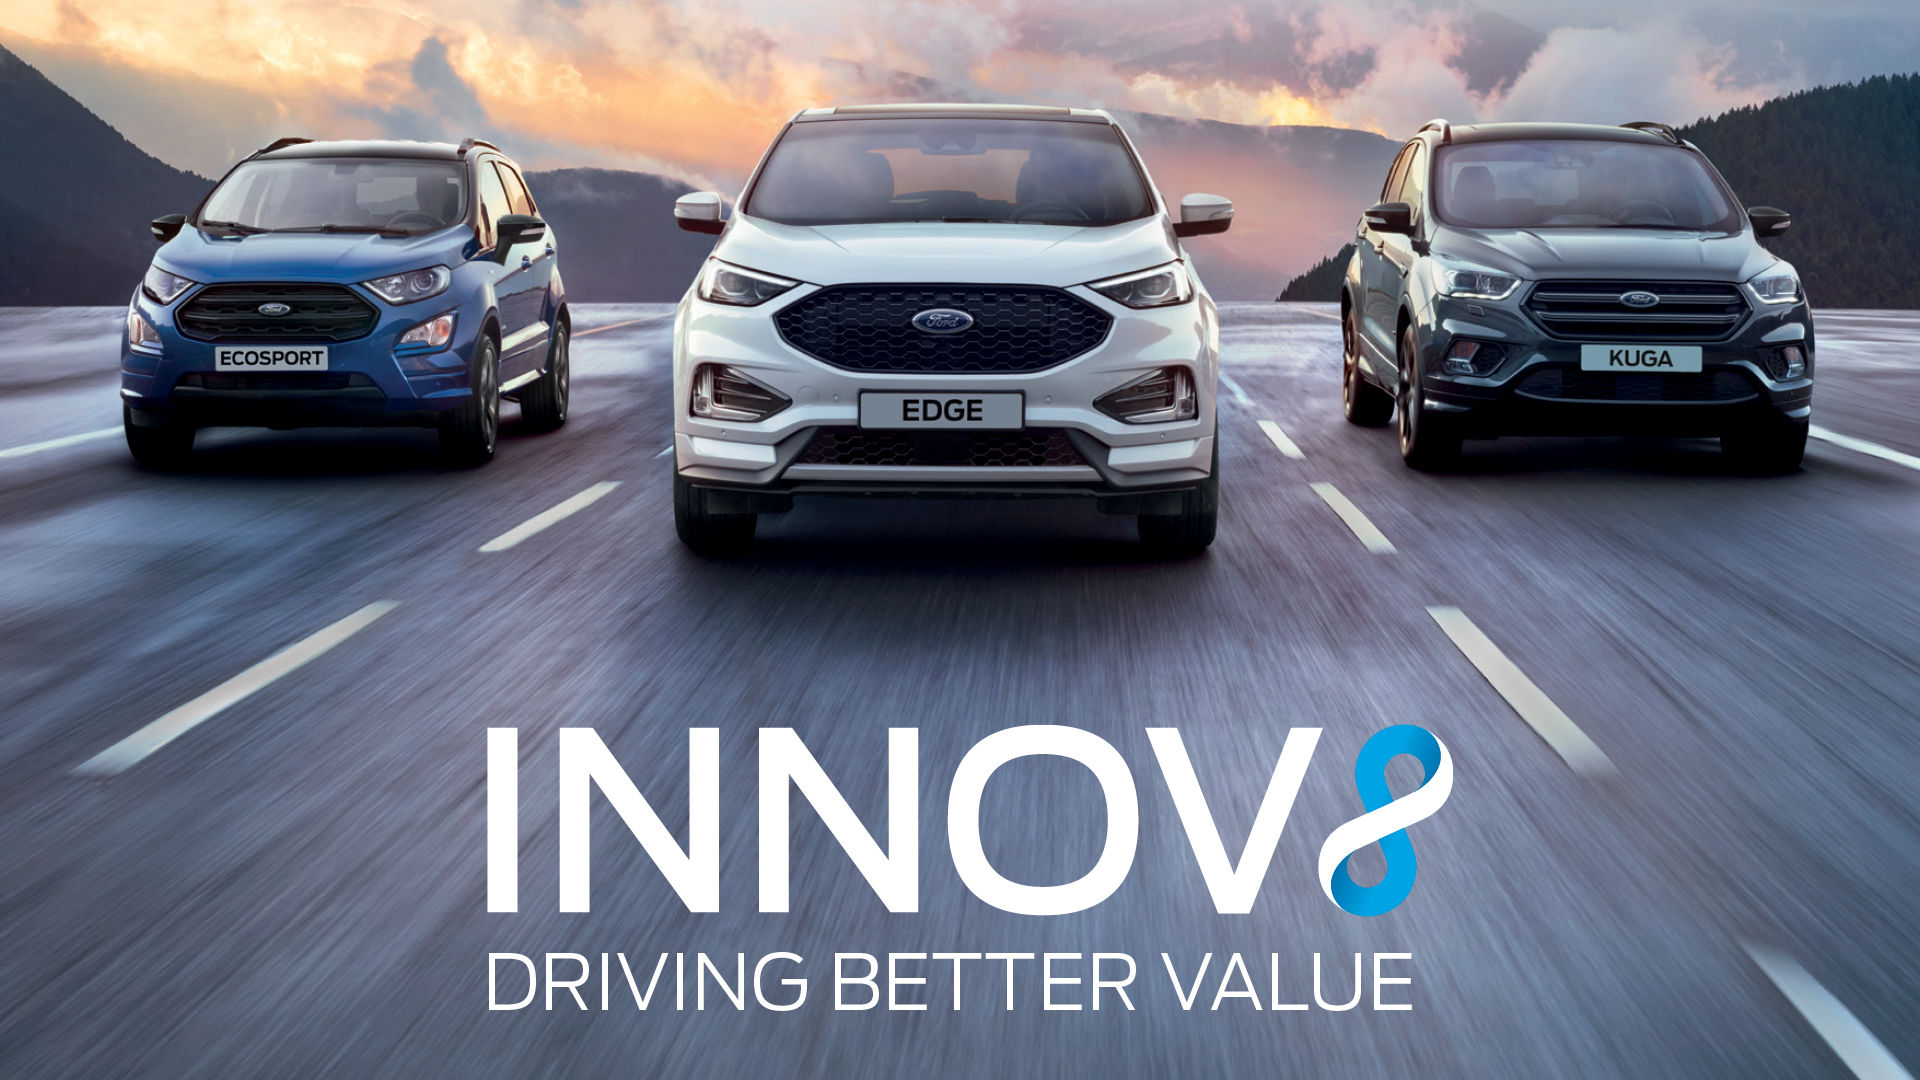 innov8-driving-better-value